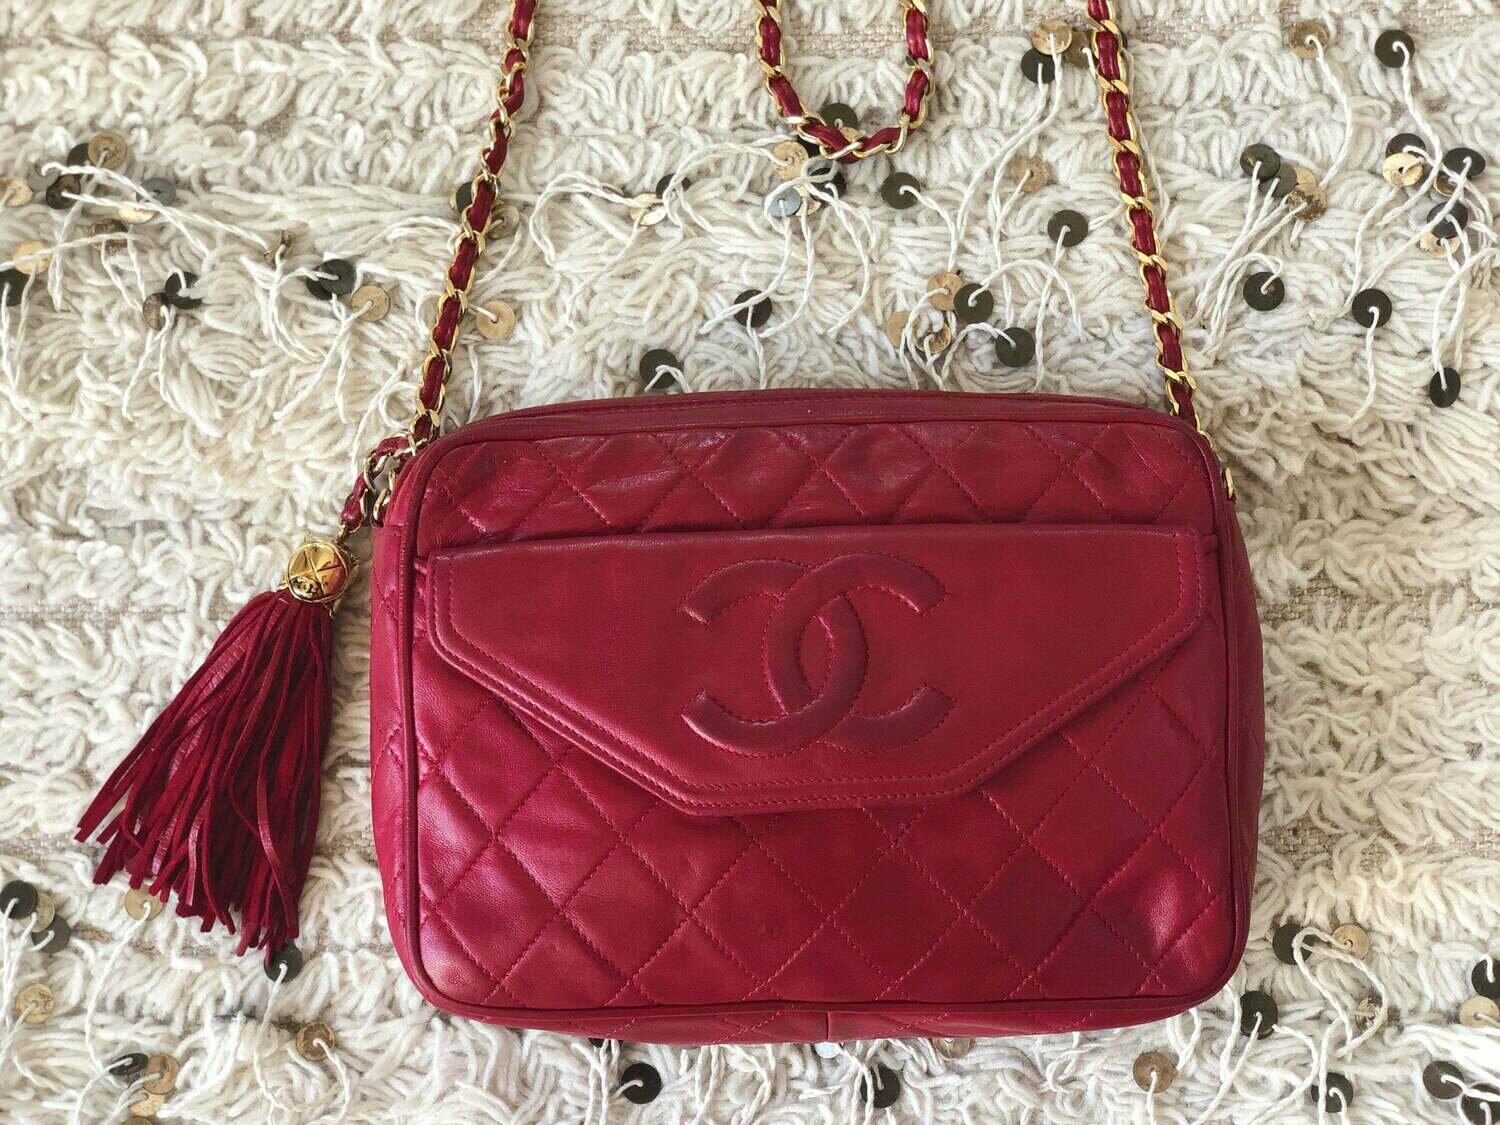 Vintage CHANEL CC Logo Matelasse Quilted Red Leather Chain CROSSBODY Camera Bag Clutch Purse Bag with fringe tassel